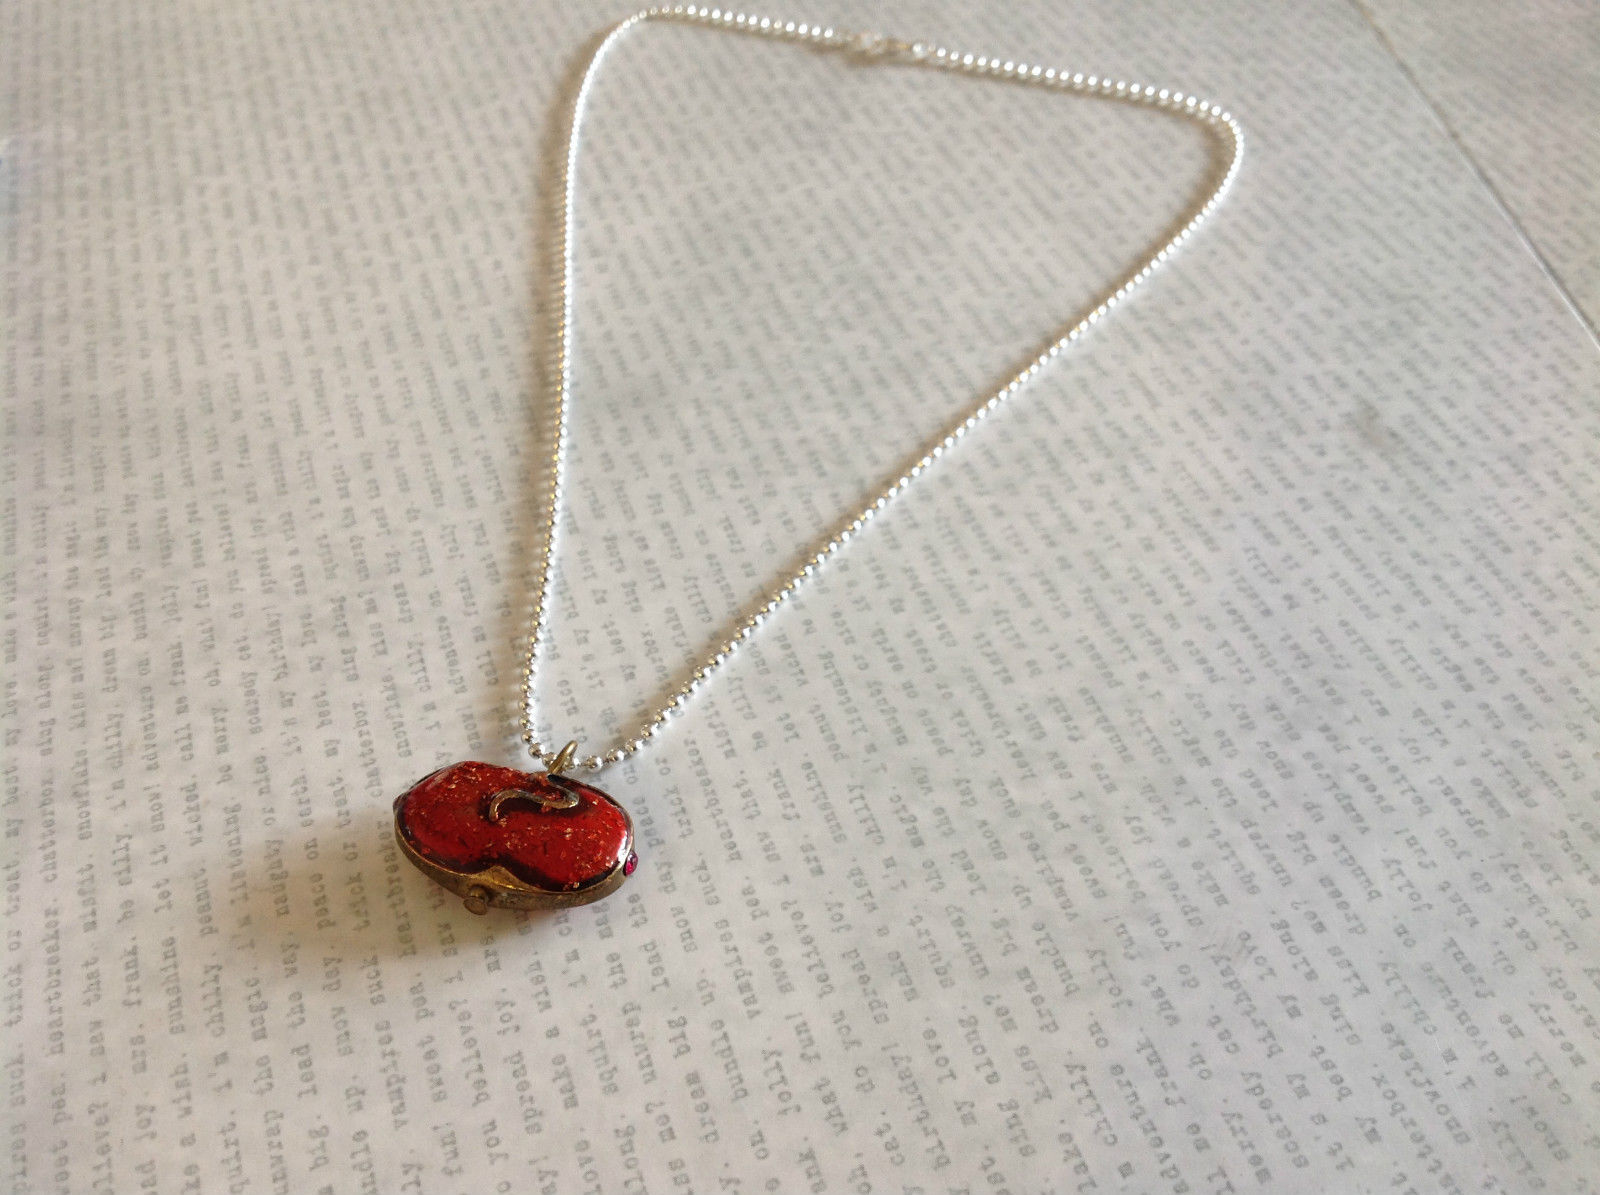 Vintage Handmade Red Enamel Pendant Necklace Rhinestone Sterling Silver Chain